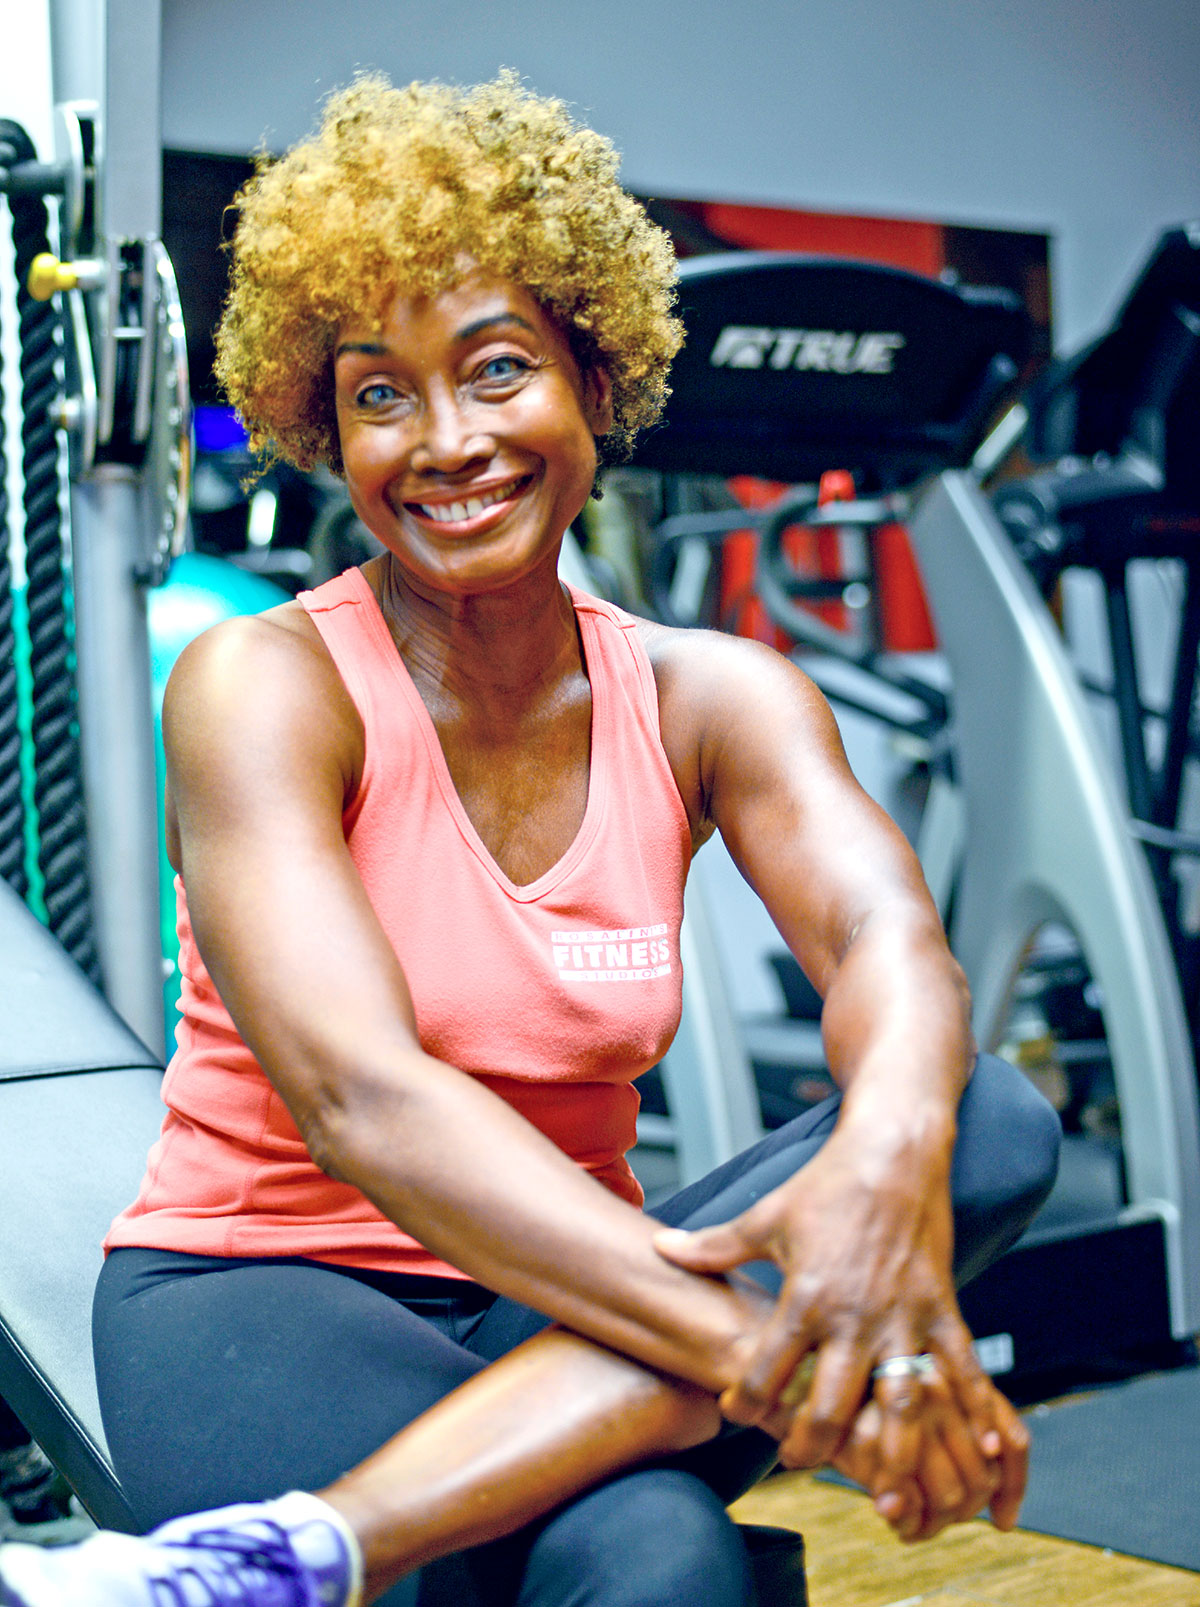 Rosalind Neilen, owner and fitness coach of Rosalind's Fitness Studios